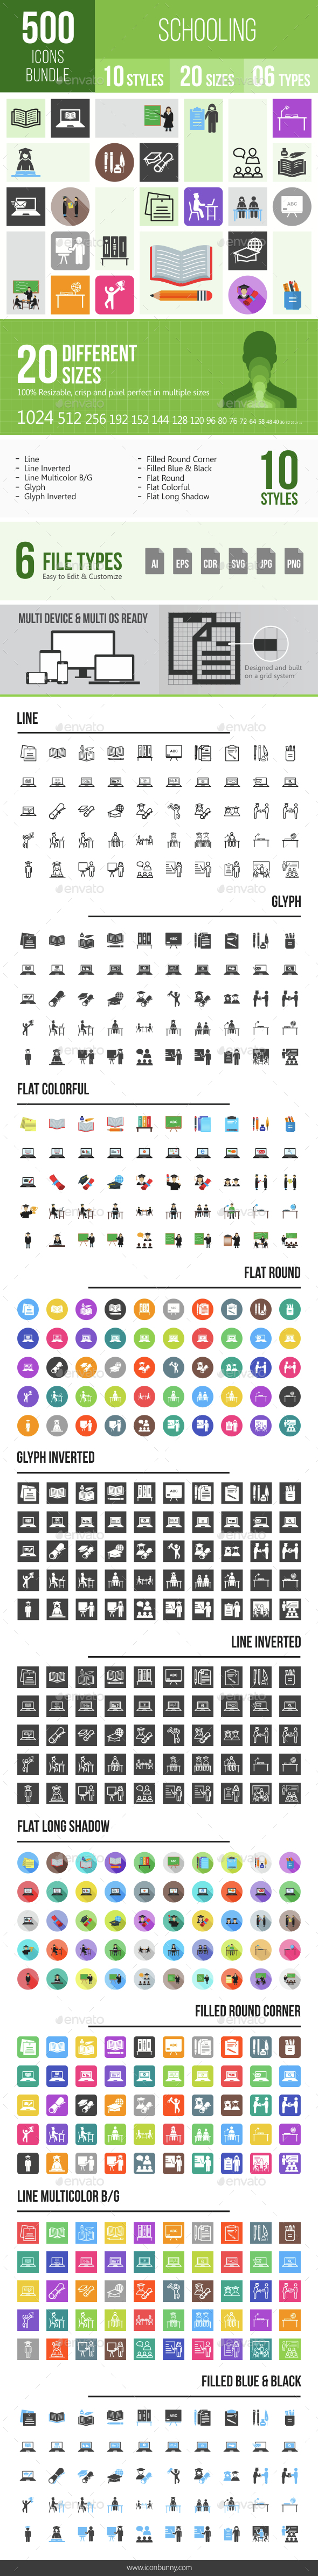 500 Schooling Icons Bundle - Icons